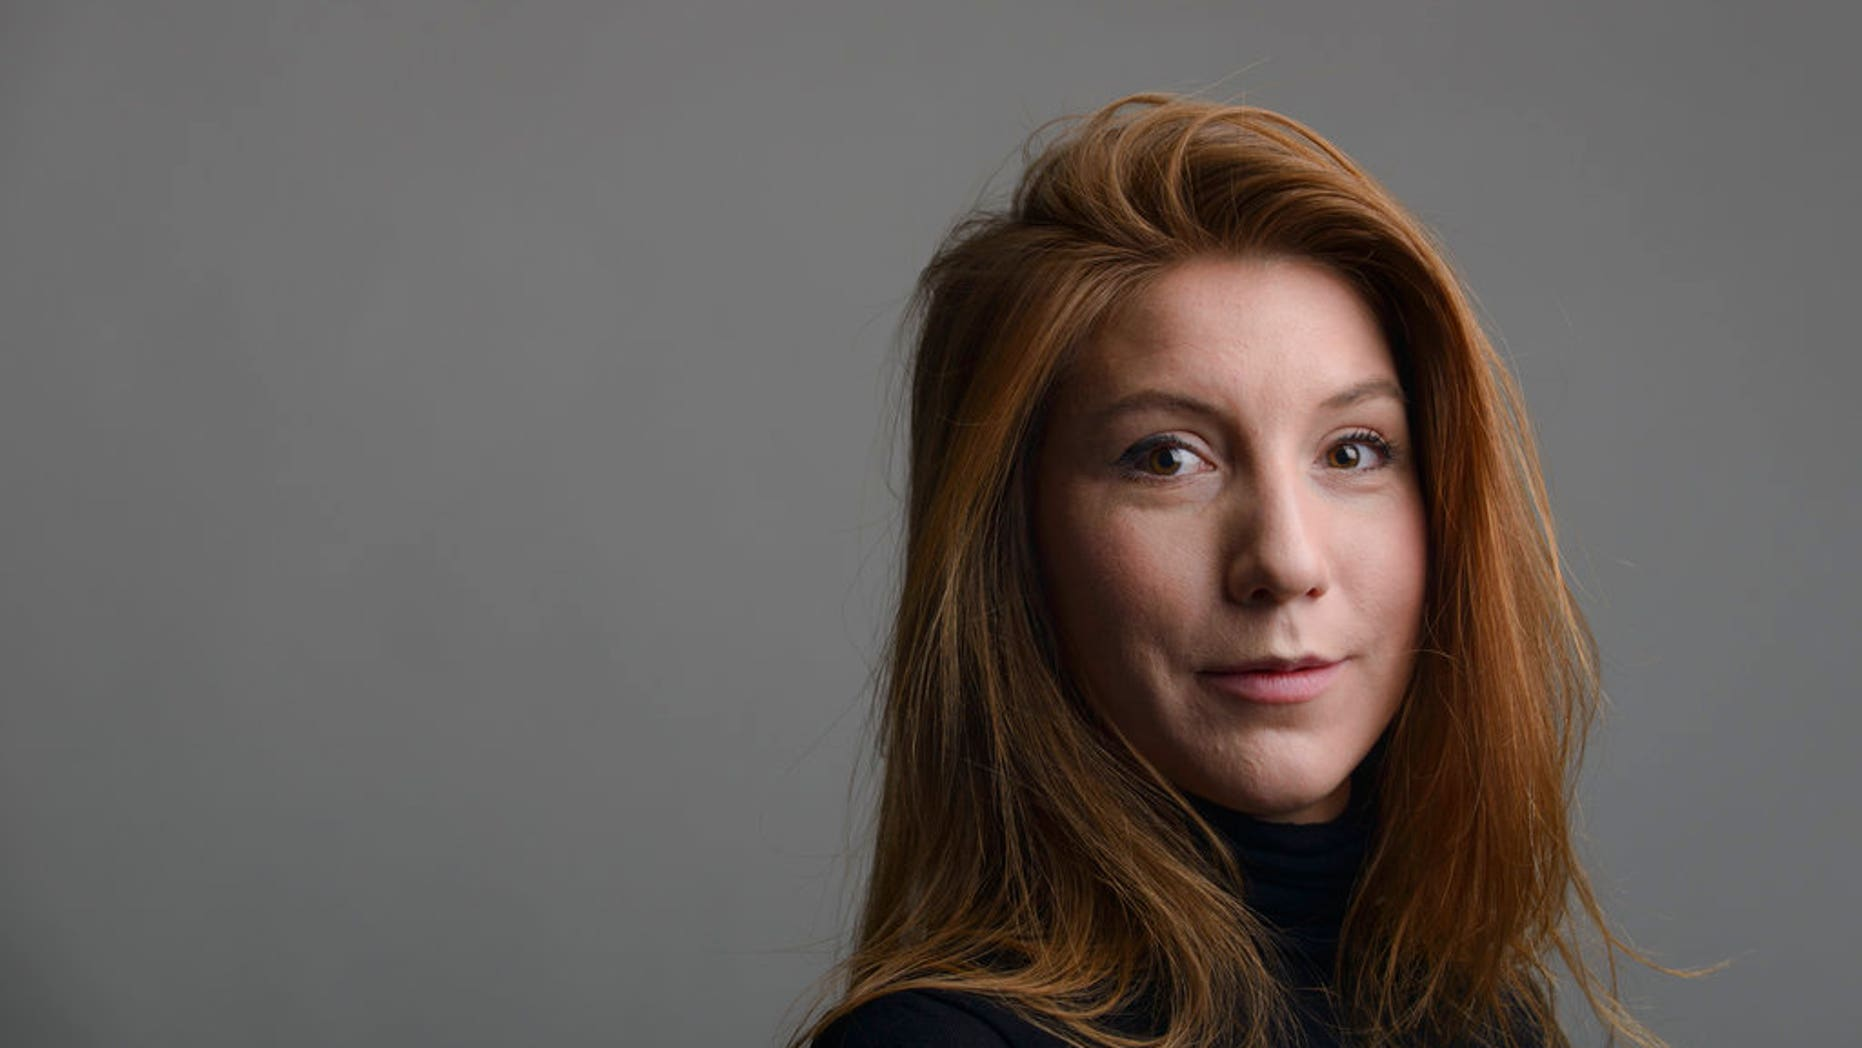 Swedish journalist Kim Wall, 30, disappeared after boarding Madsen's submarine, which later sank. A headless torso that washed up Monday matched Wall's DNA.